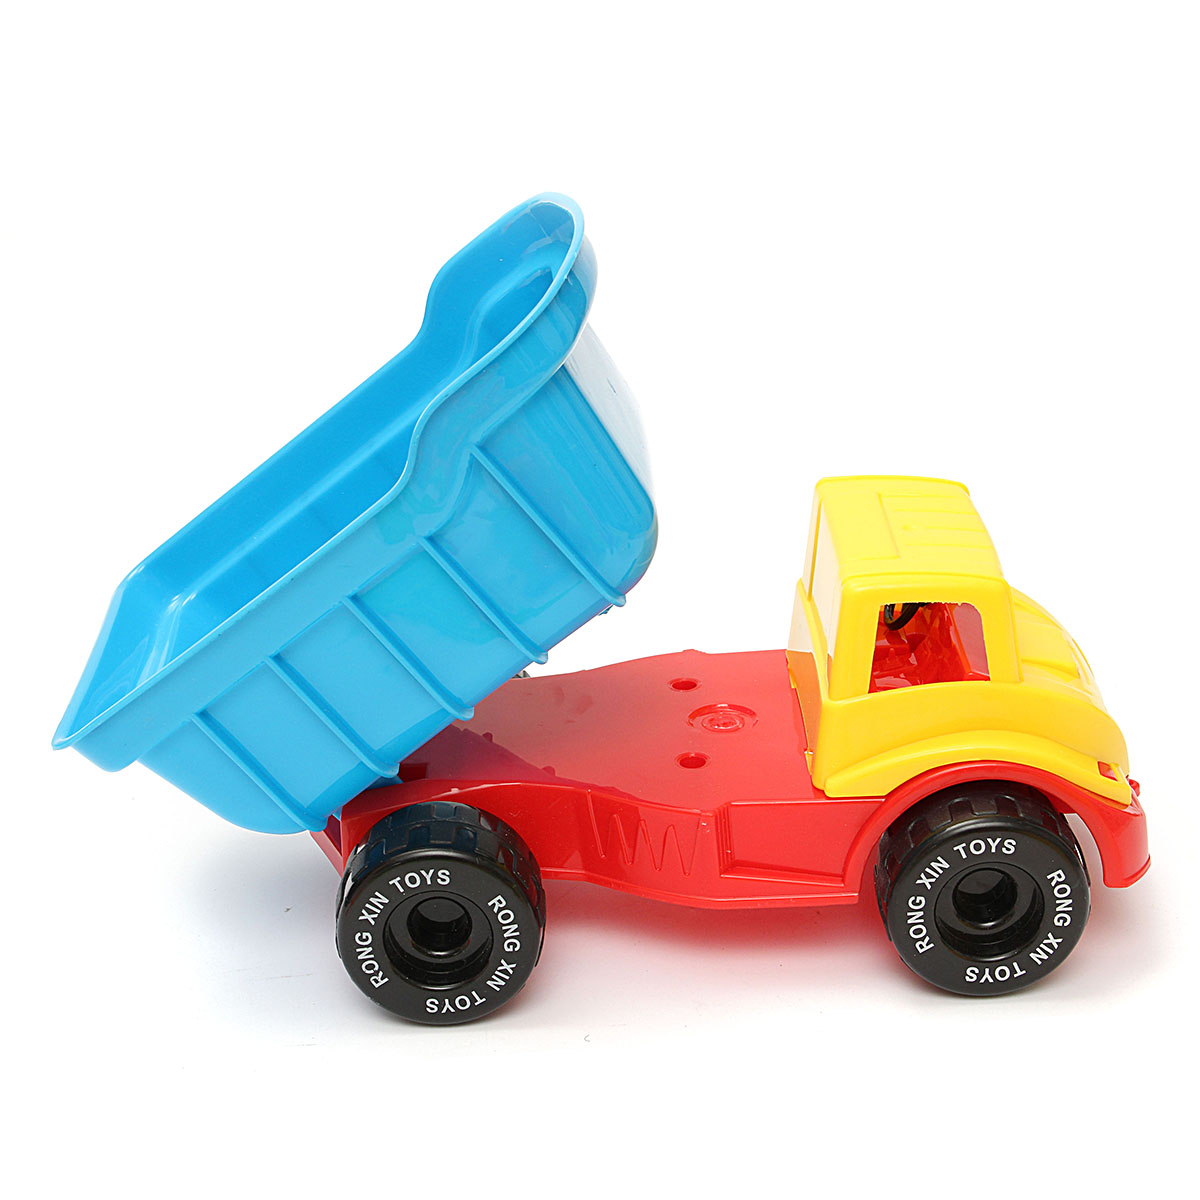 21PCS Beach Sand Play Toys Set Bucket Rake Sand Wheel Watering Can Mold